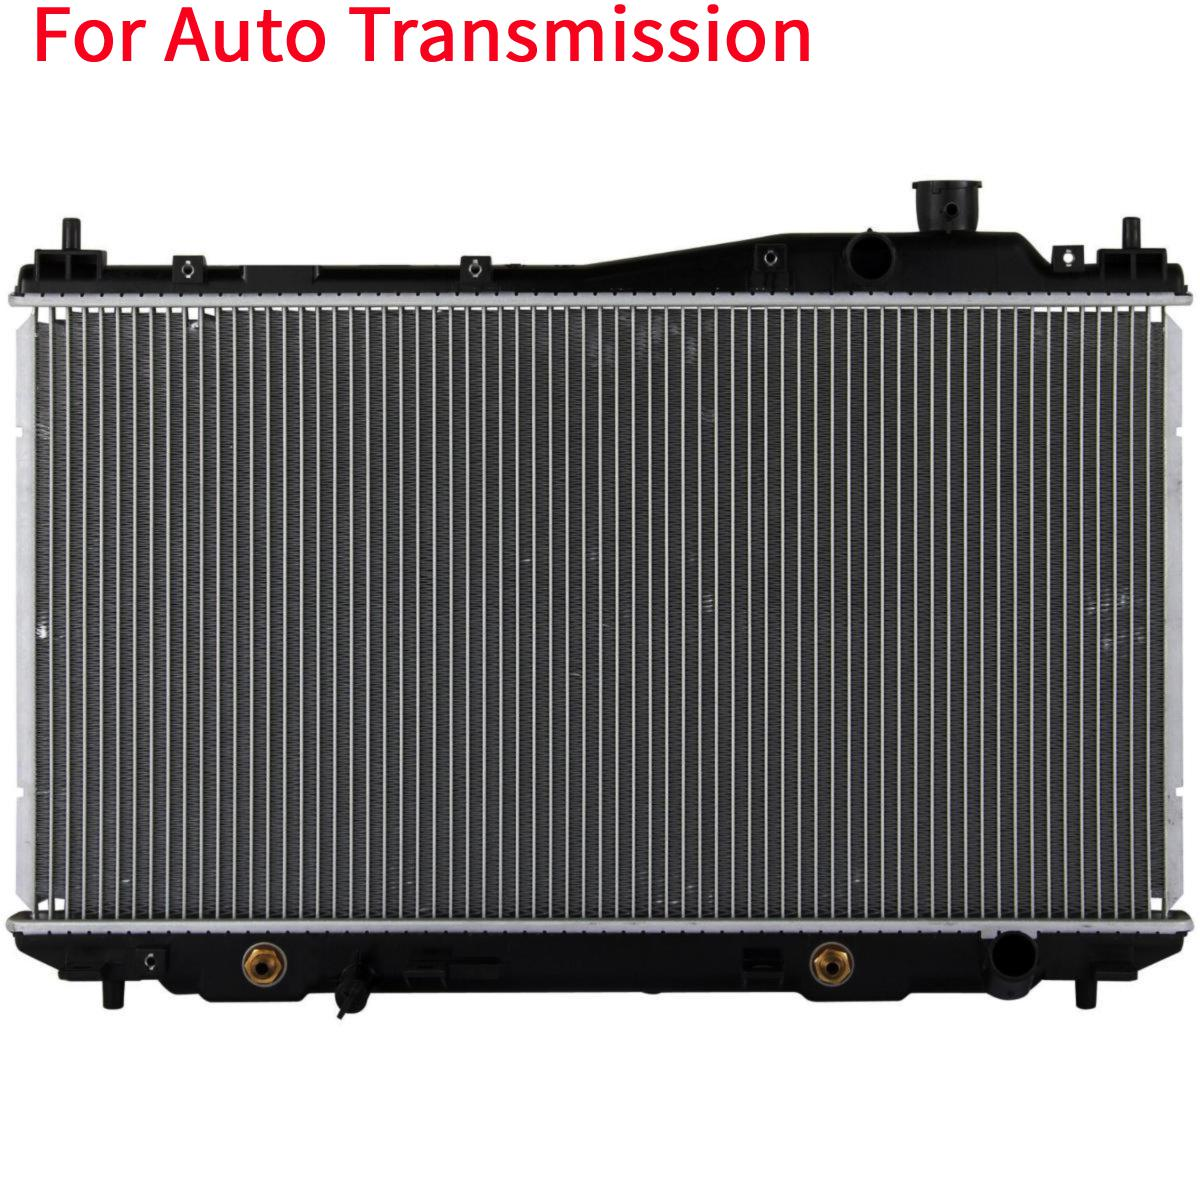 AT Aluminum/Plastic Radiator For 2001-05 Acura EL 1.7L